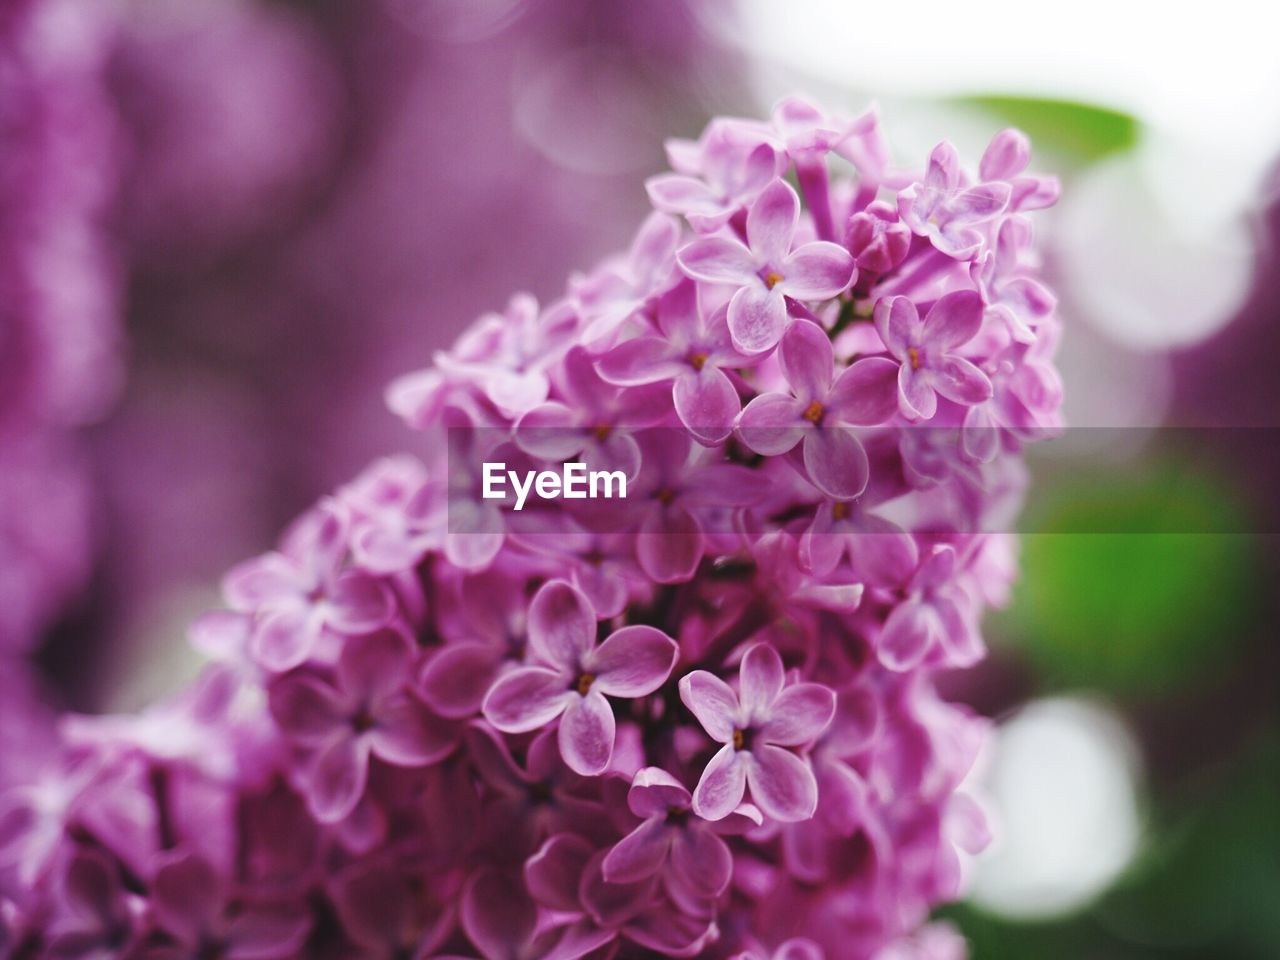 flower, beauty in nature, nature, fragility, petal, purple, focus on foreground, freshness, close-up, growth, plant, outdoors, flower head, day, no people, blooming, lilac